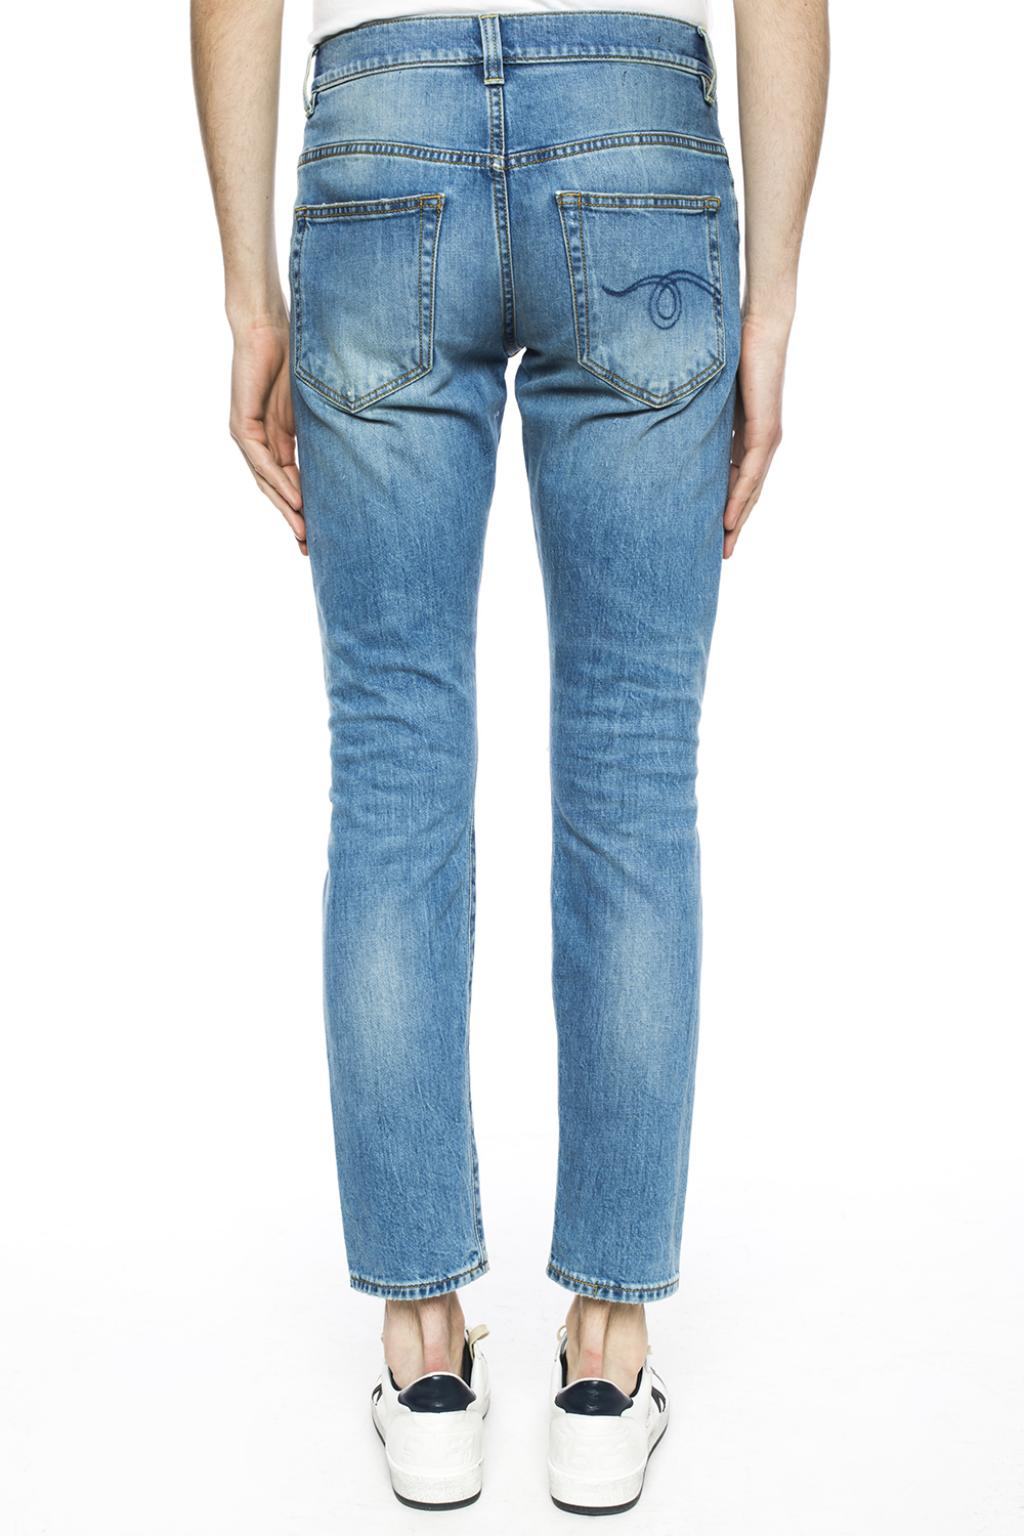 R13 Jeans with holes